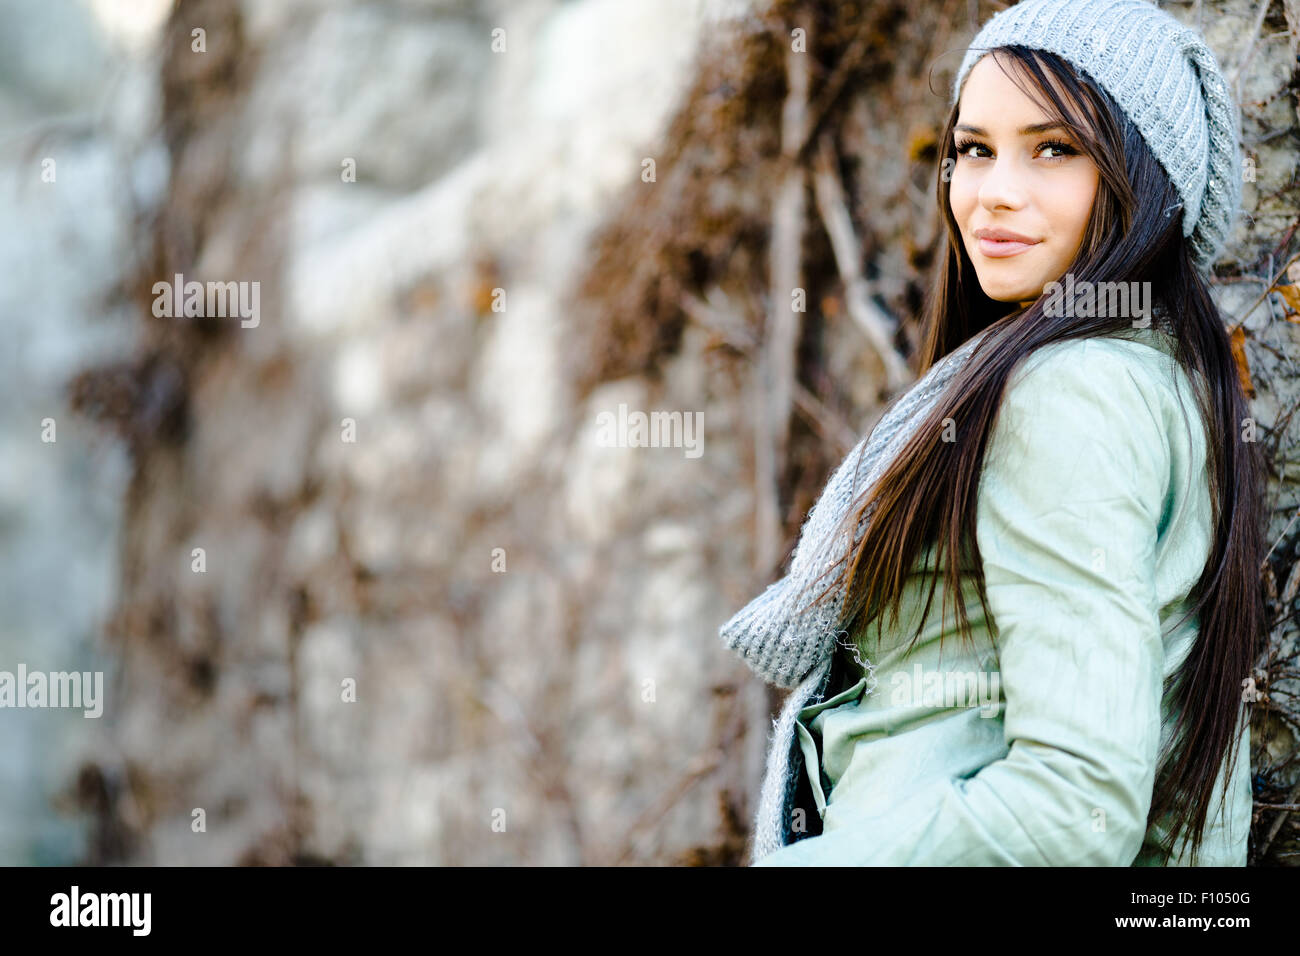 Portrait of a young beautiful woman in autumn ambient as leaning against a wall - Stock Image